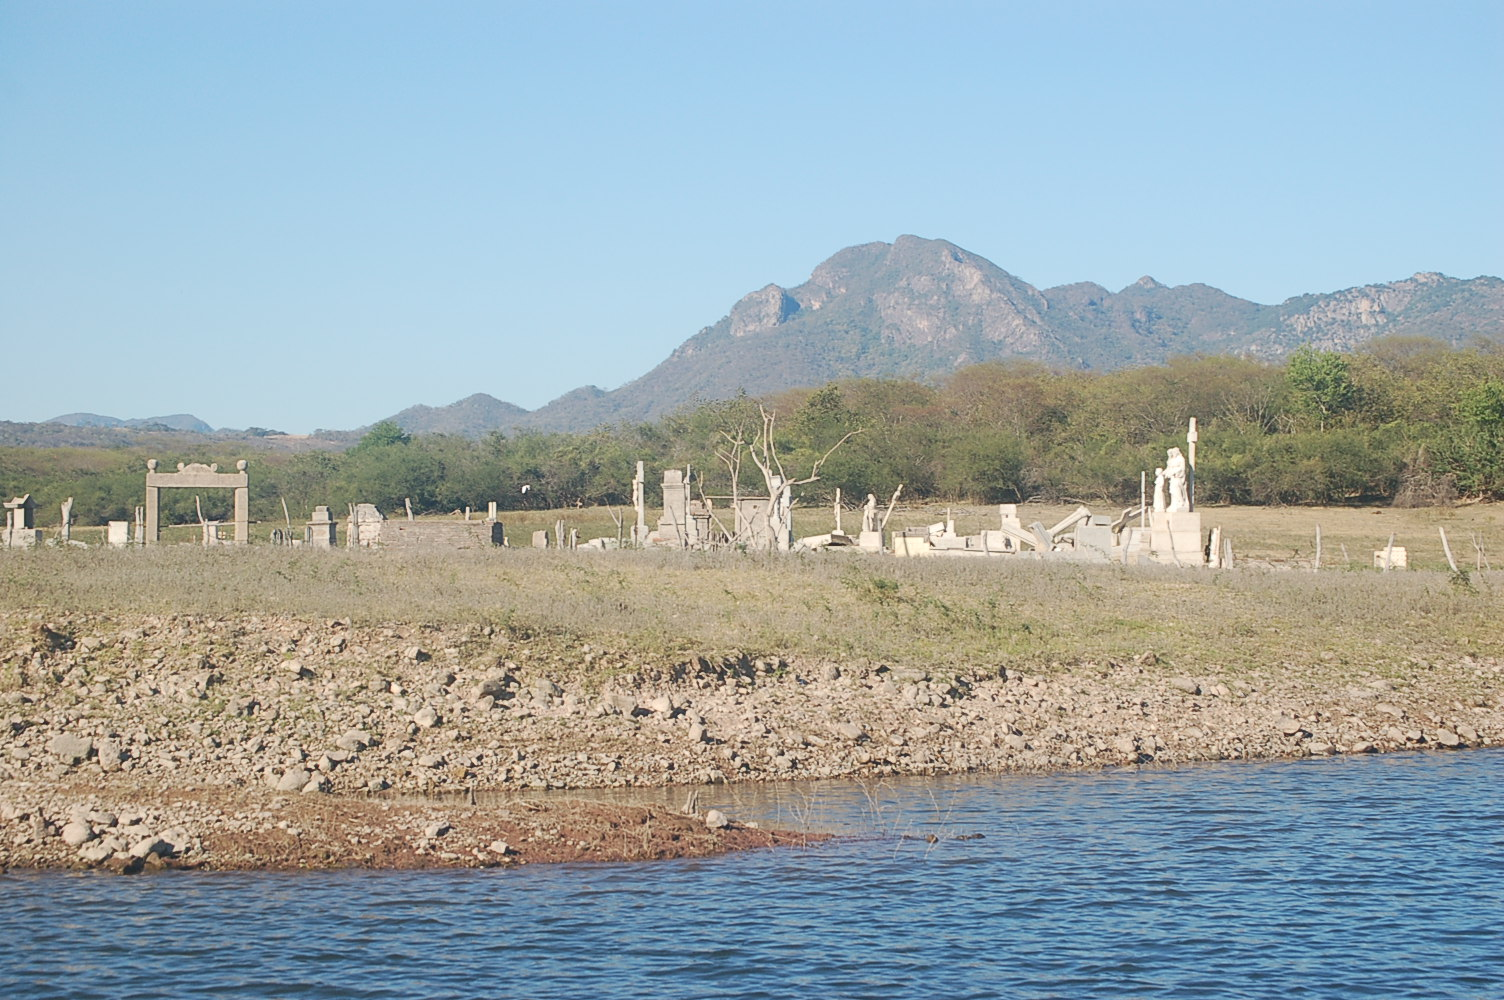 A view from the water of the flooded cemetery in Sinaloa Mexico